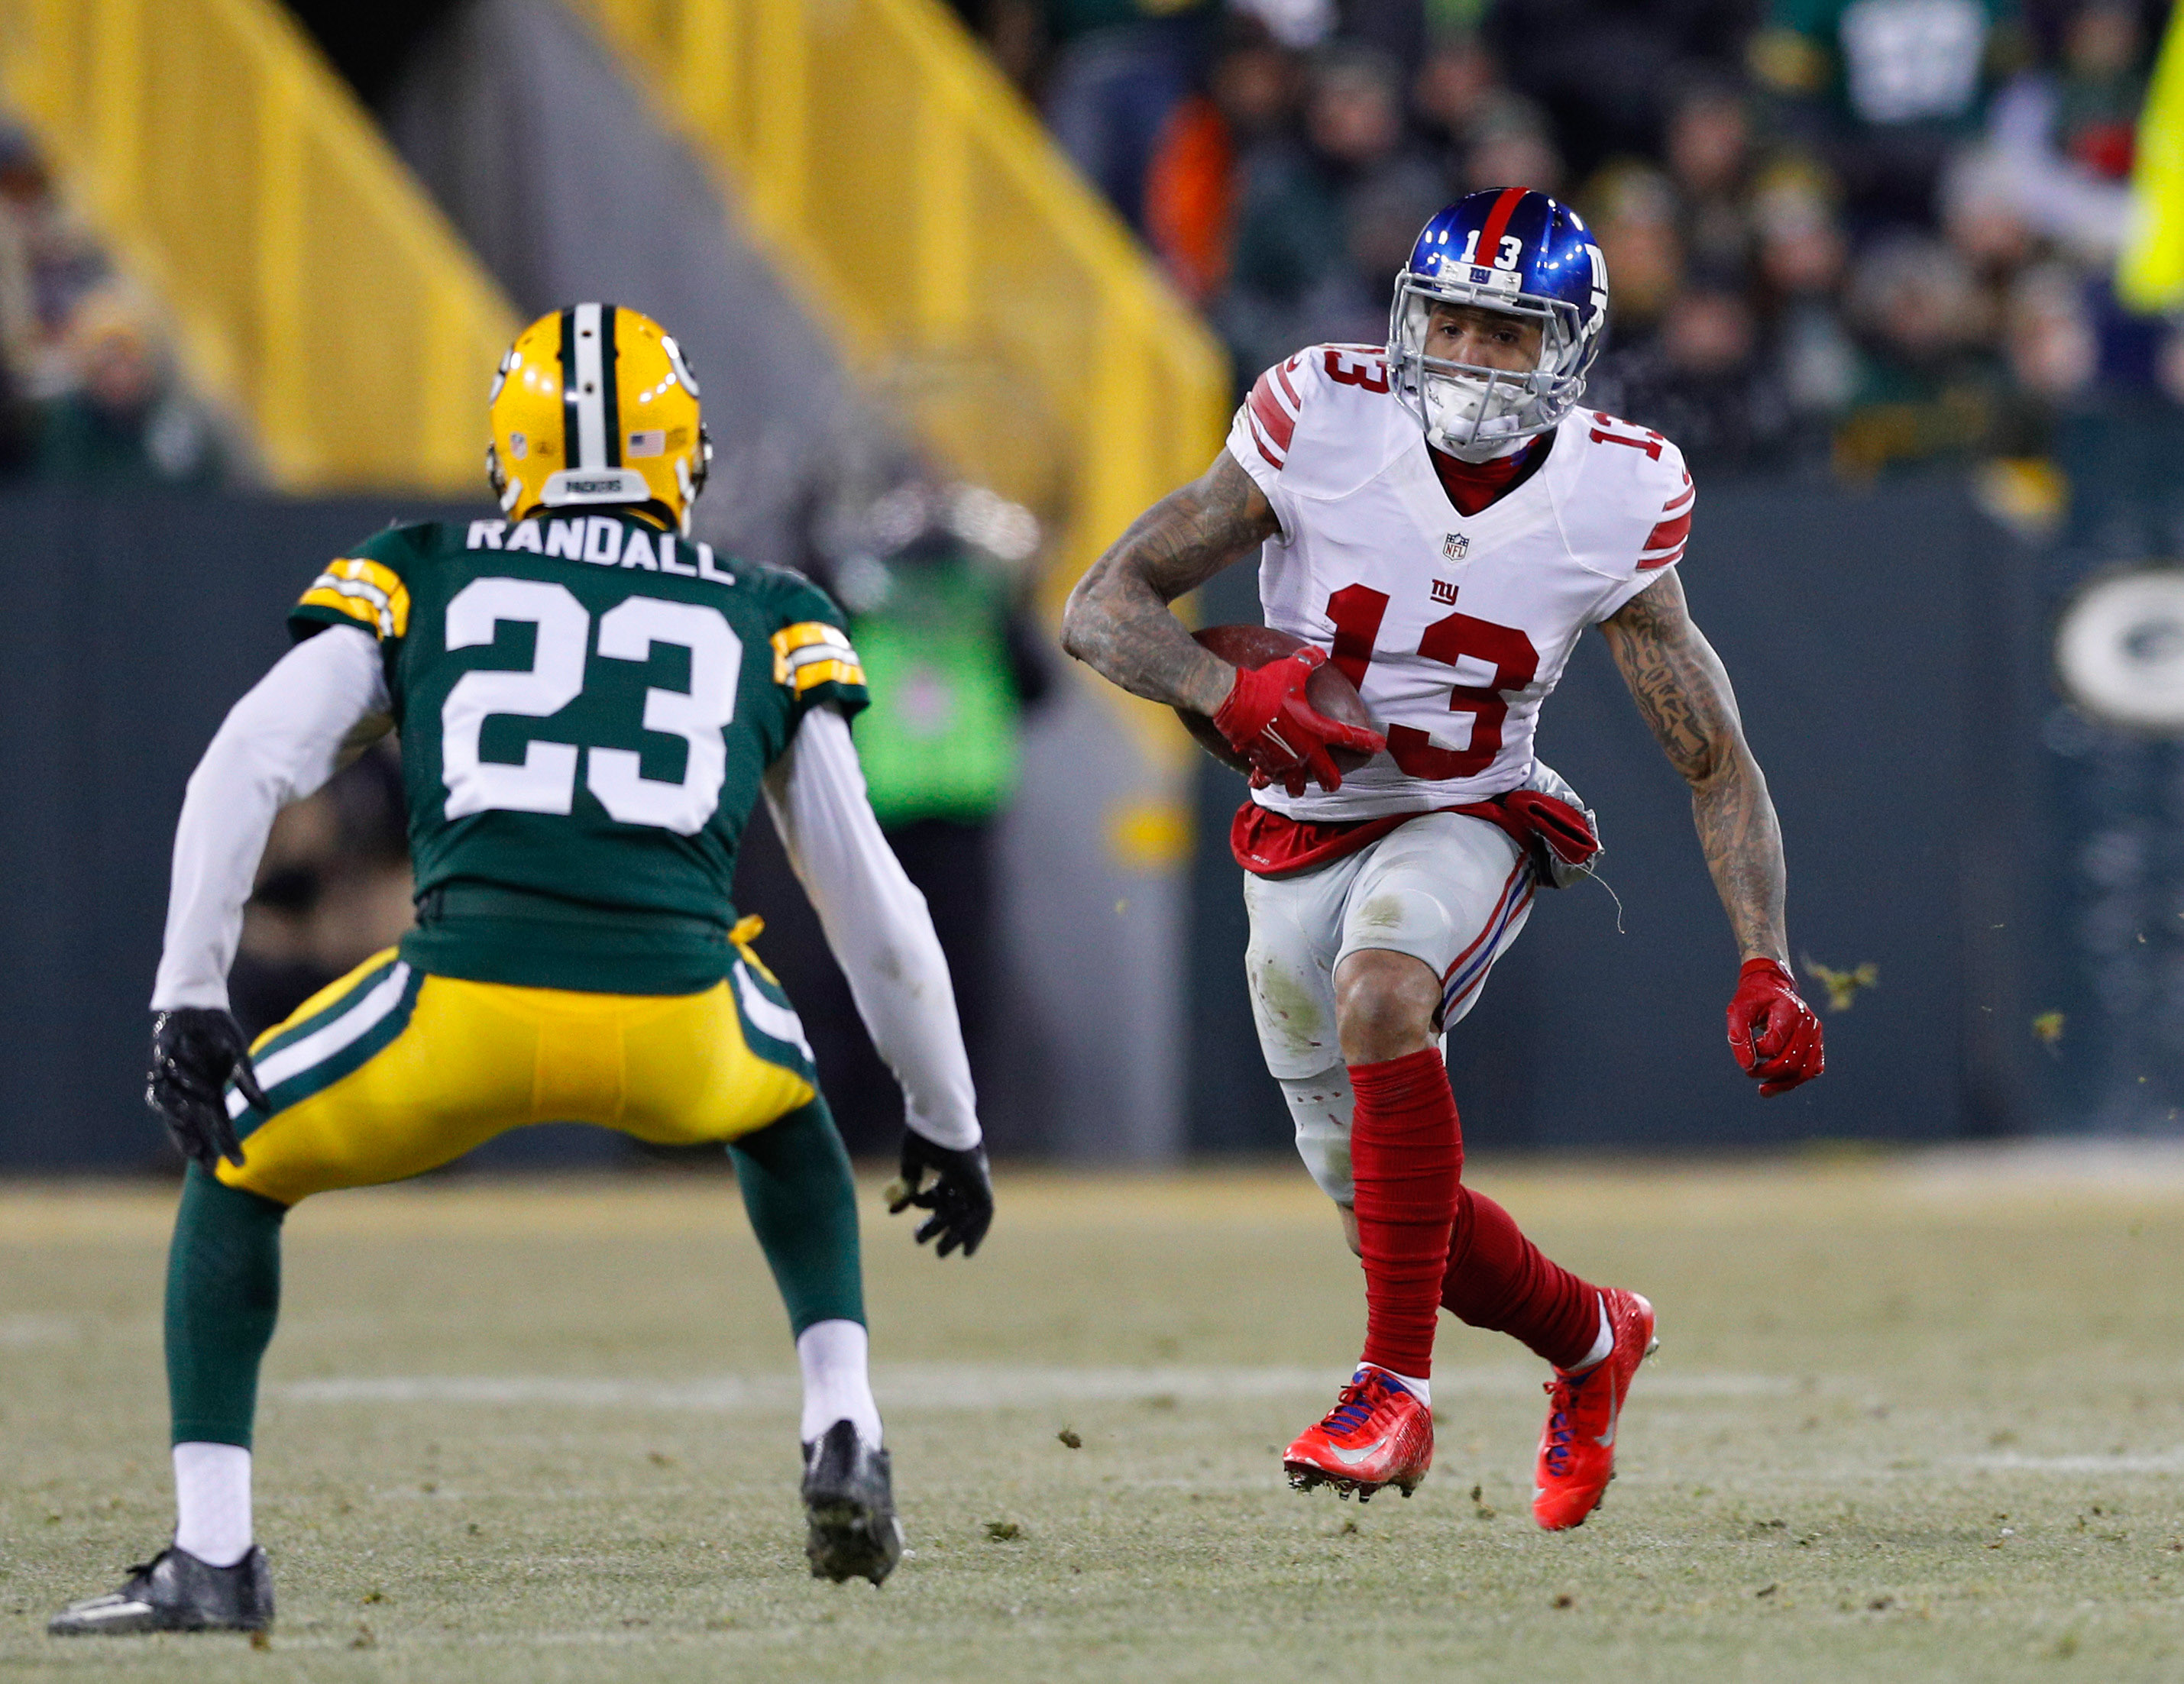 9817919-nfl-nfc-wild-card-new-york-giants-at-green-bay-packers